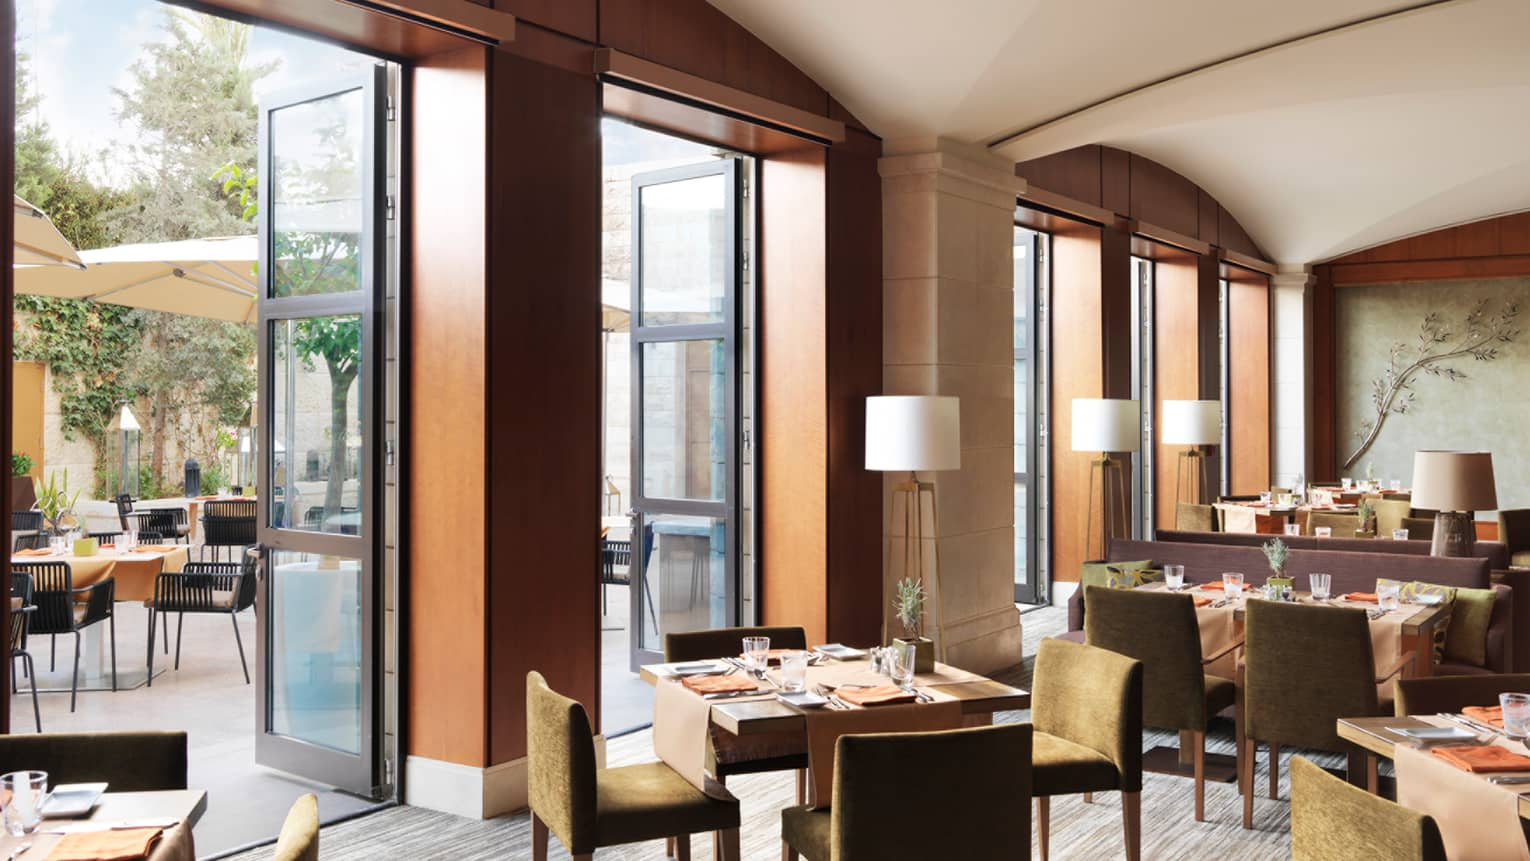 Sunny Olea dining room with tall doors open to patio, tables with brown velvet chairs inside, white lamps